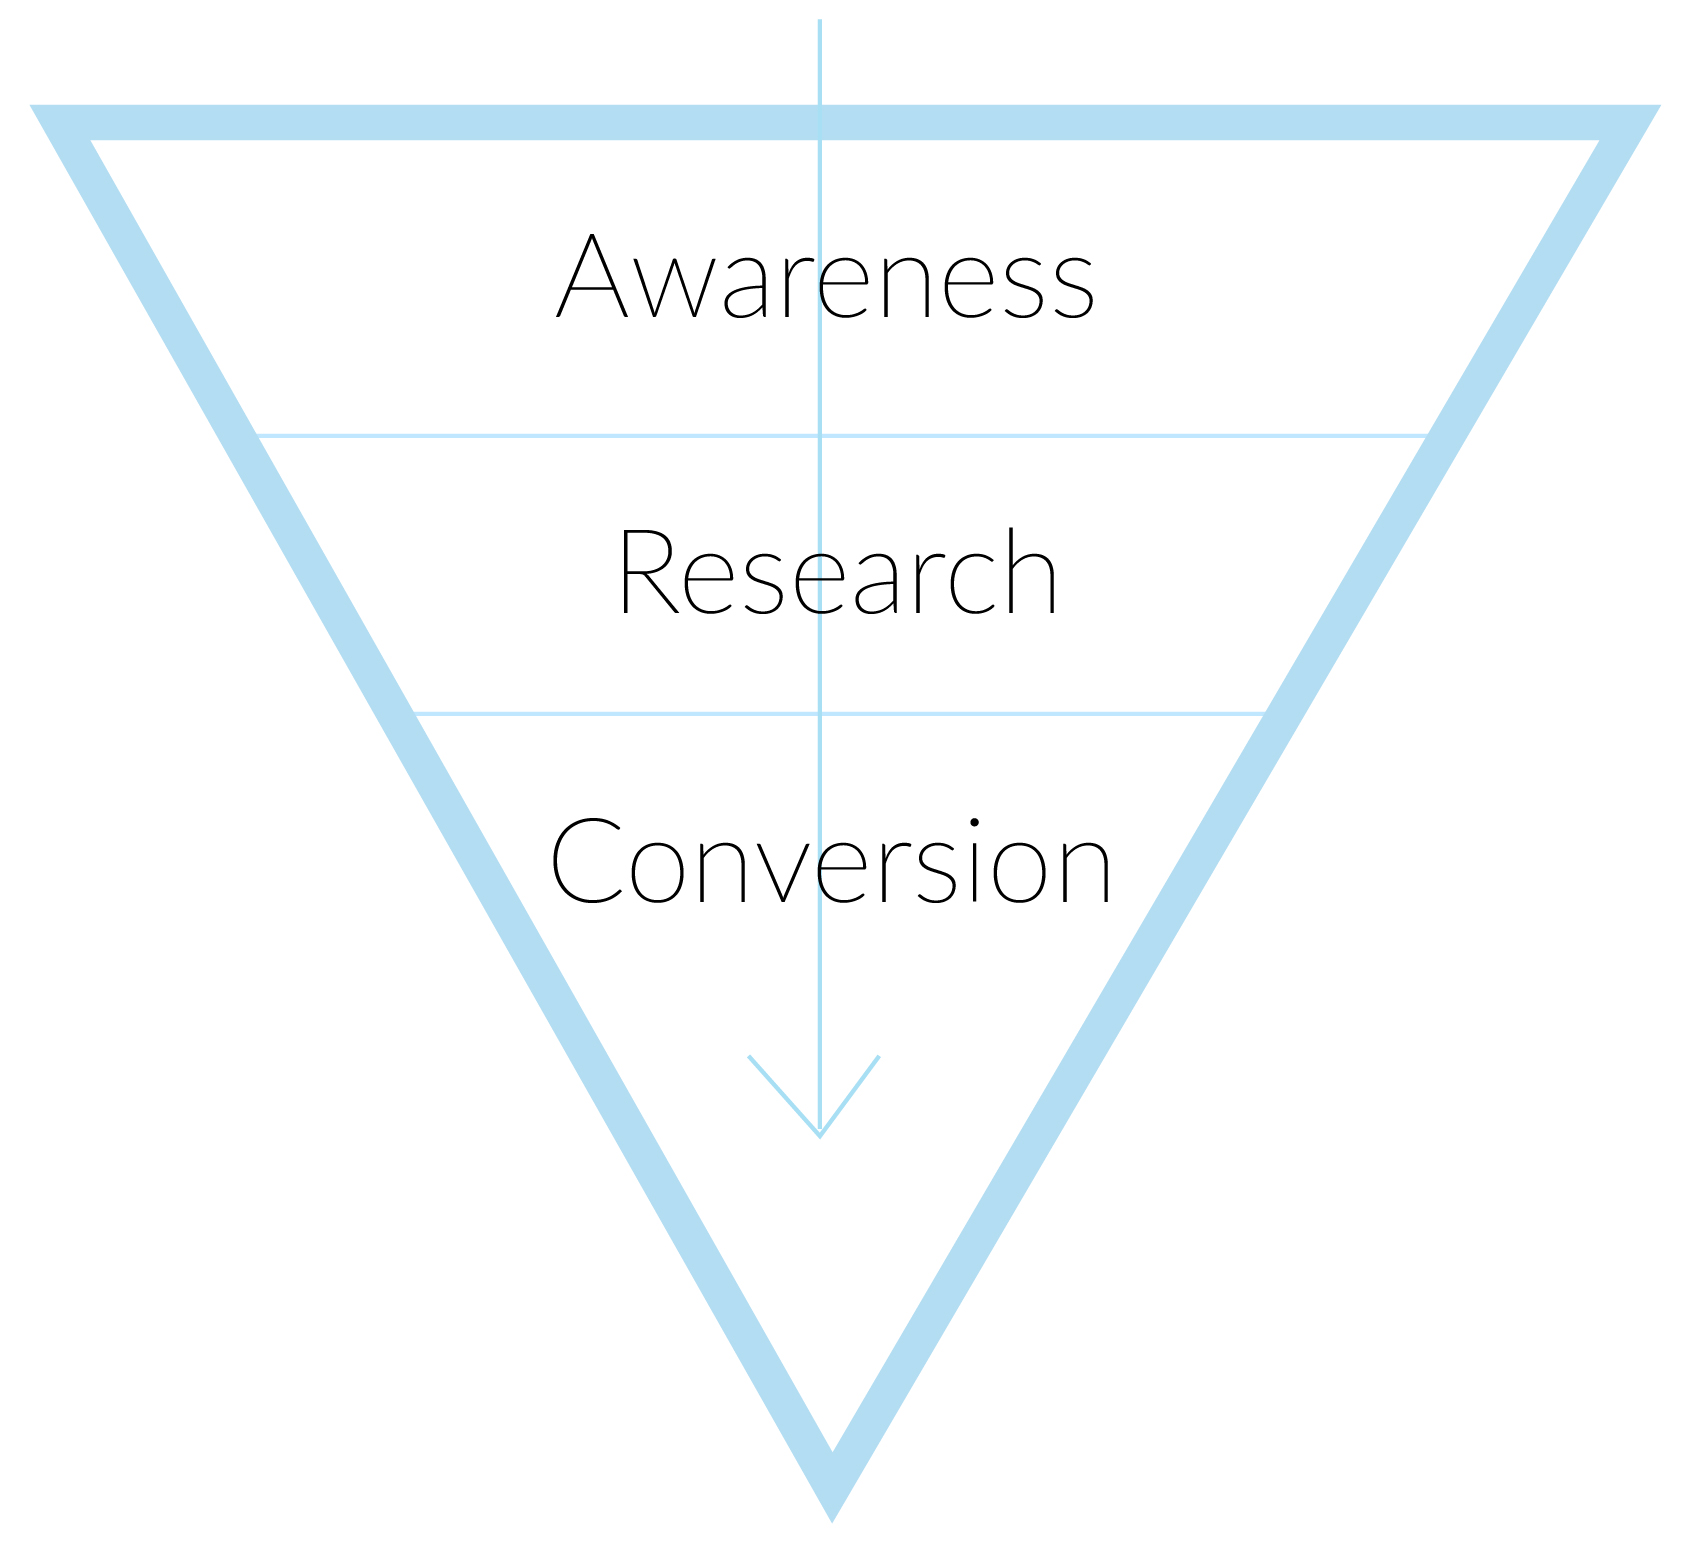 Digital marketing conversion funnel